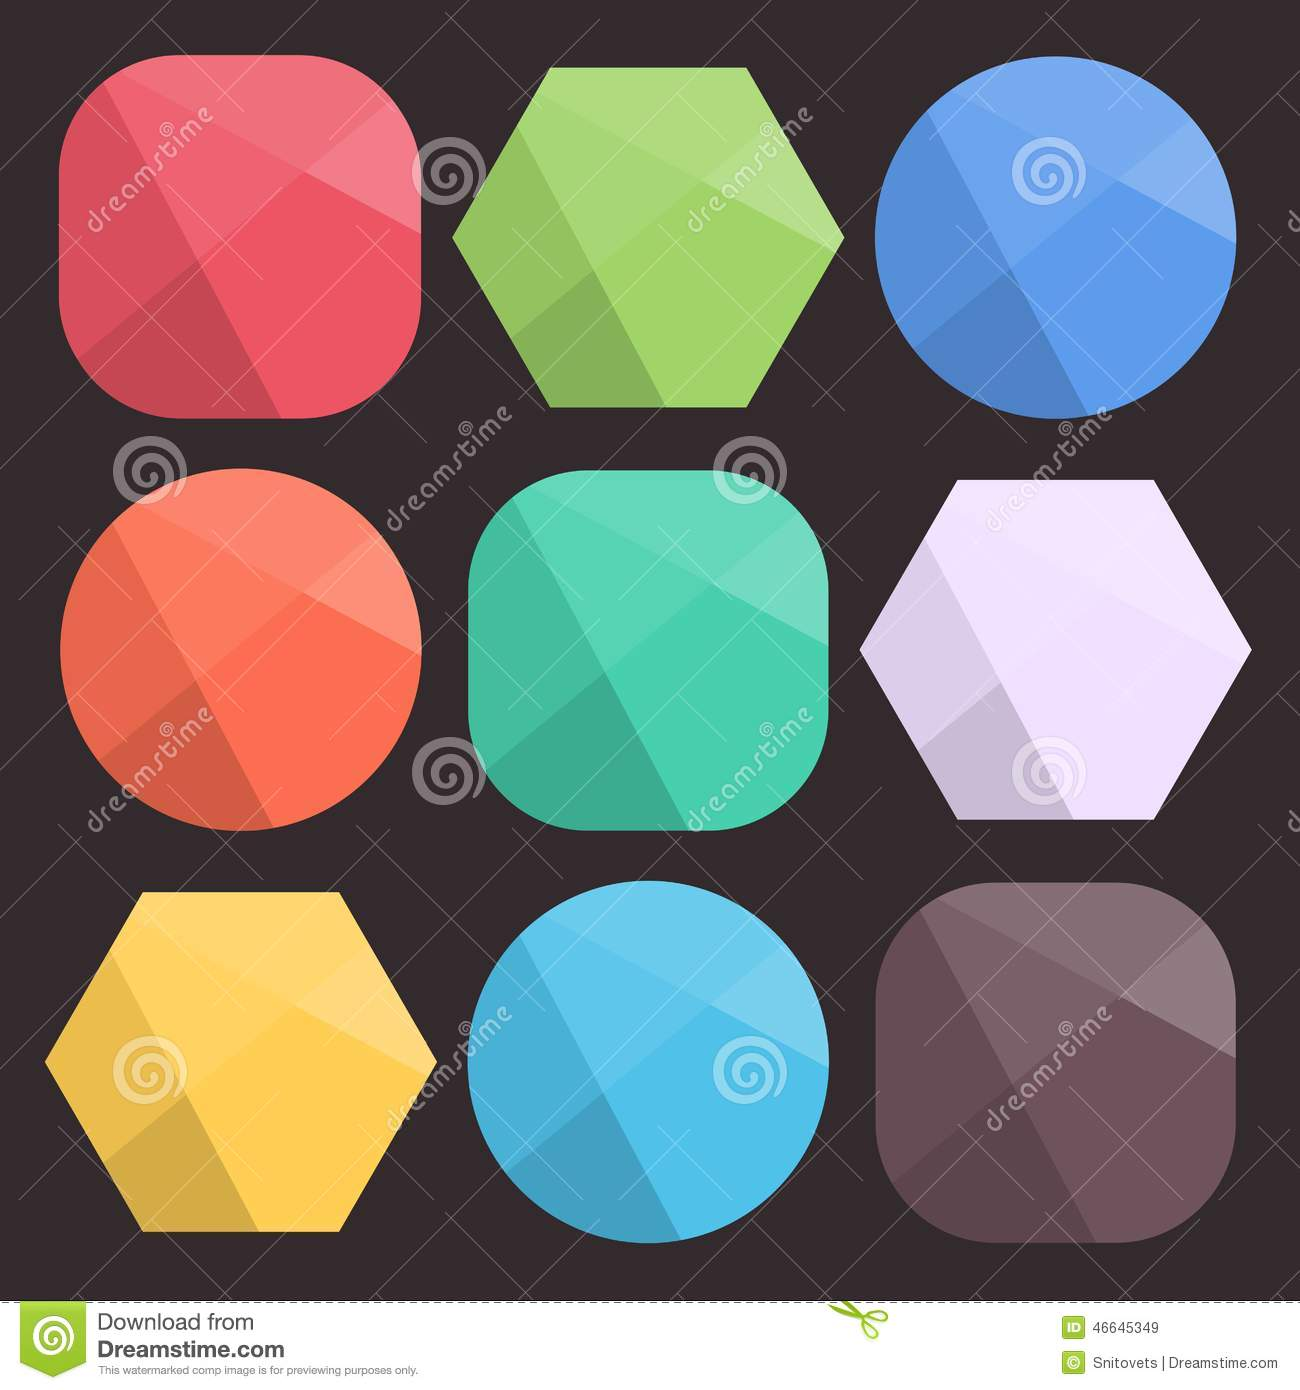 Flat Background Faceted Shapes For Icons. Simple Colorful Diamond ...